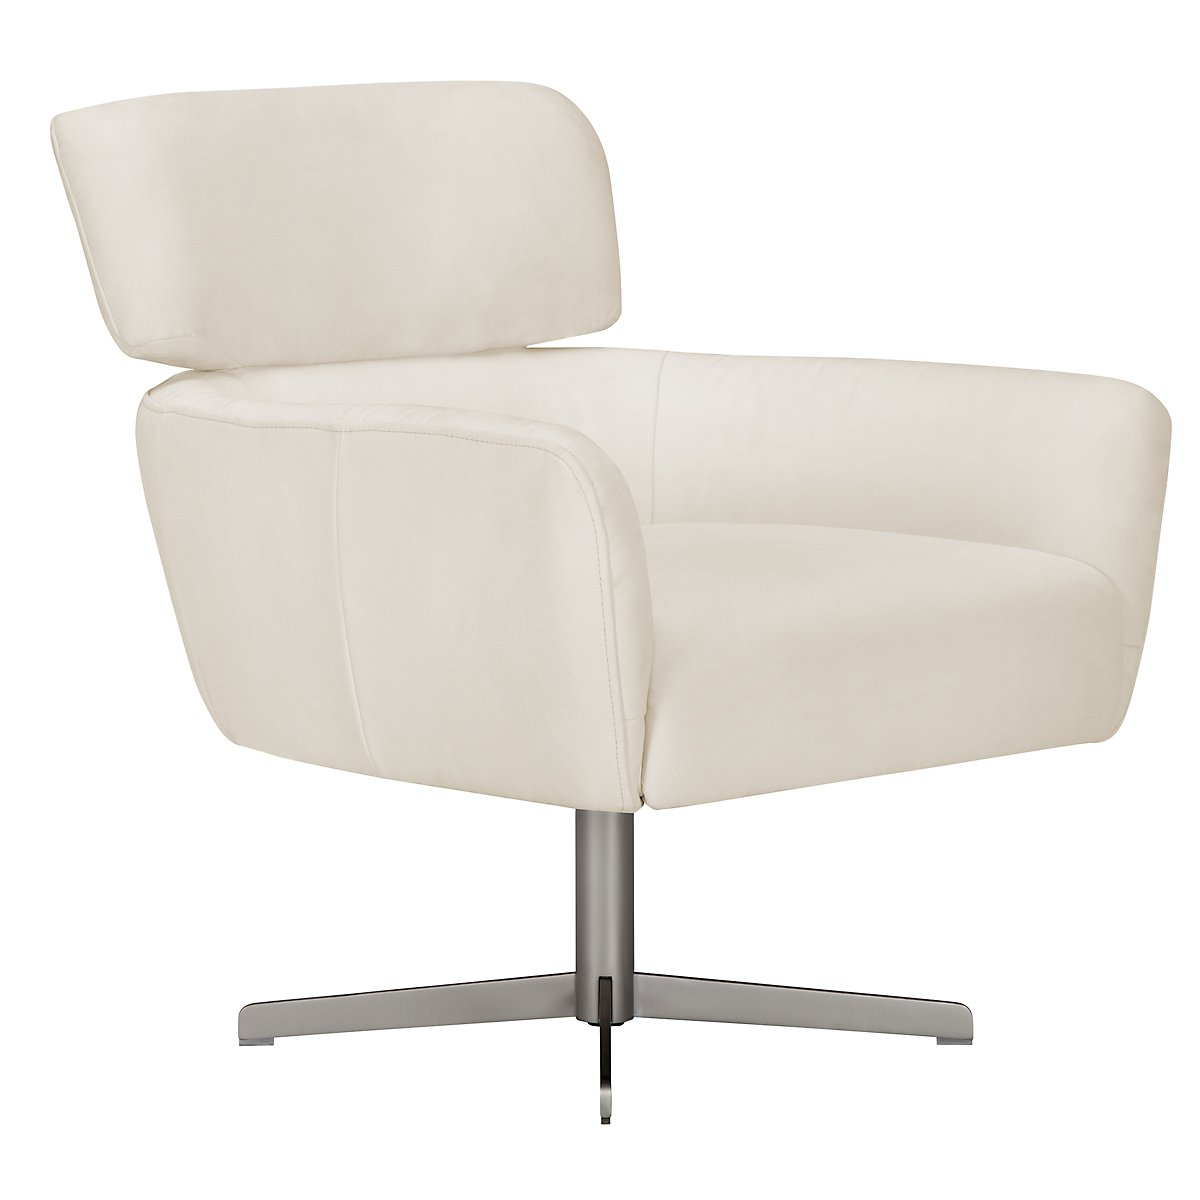 City Furniture Giovanni White Fabric Swivel Accent Chair